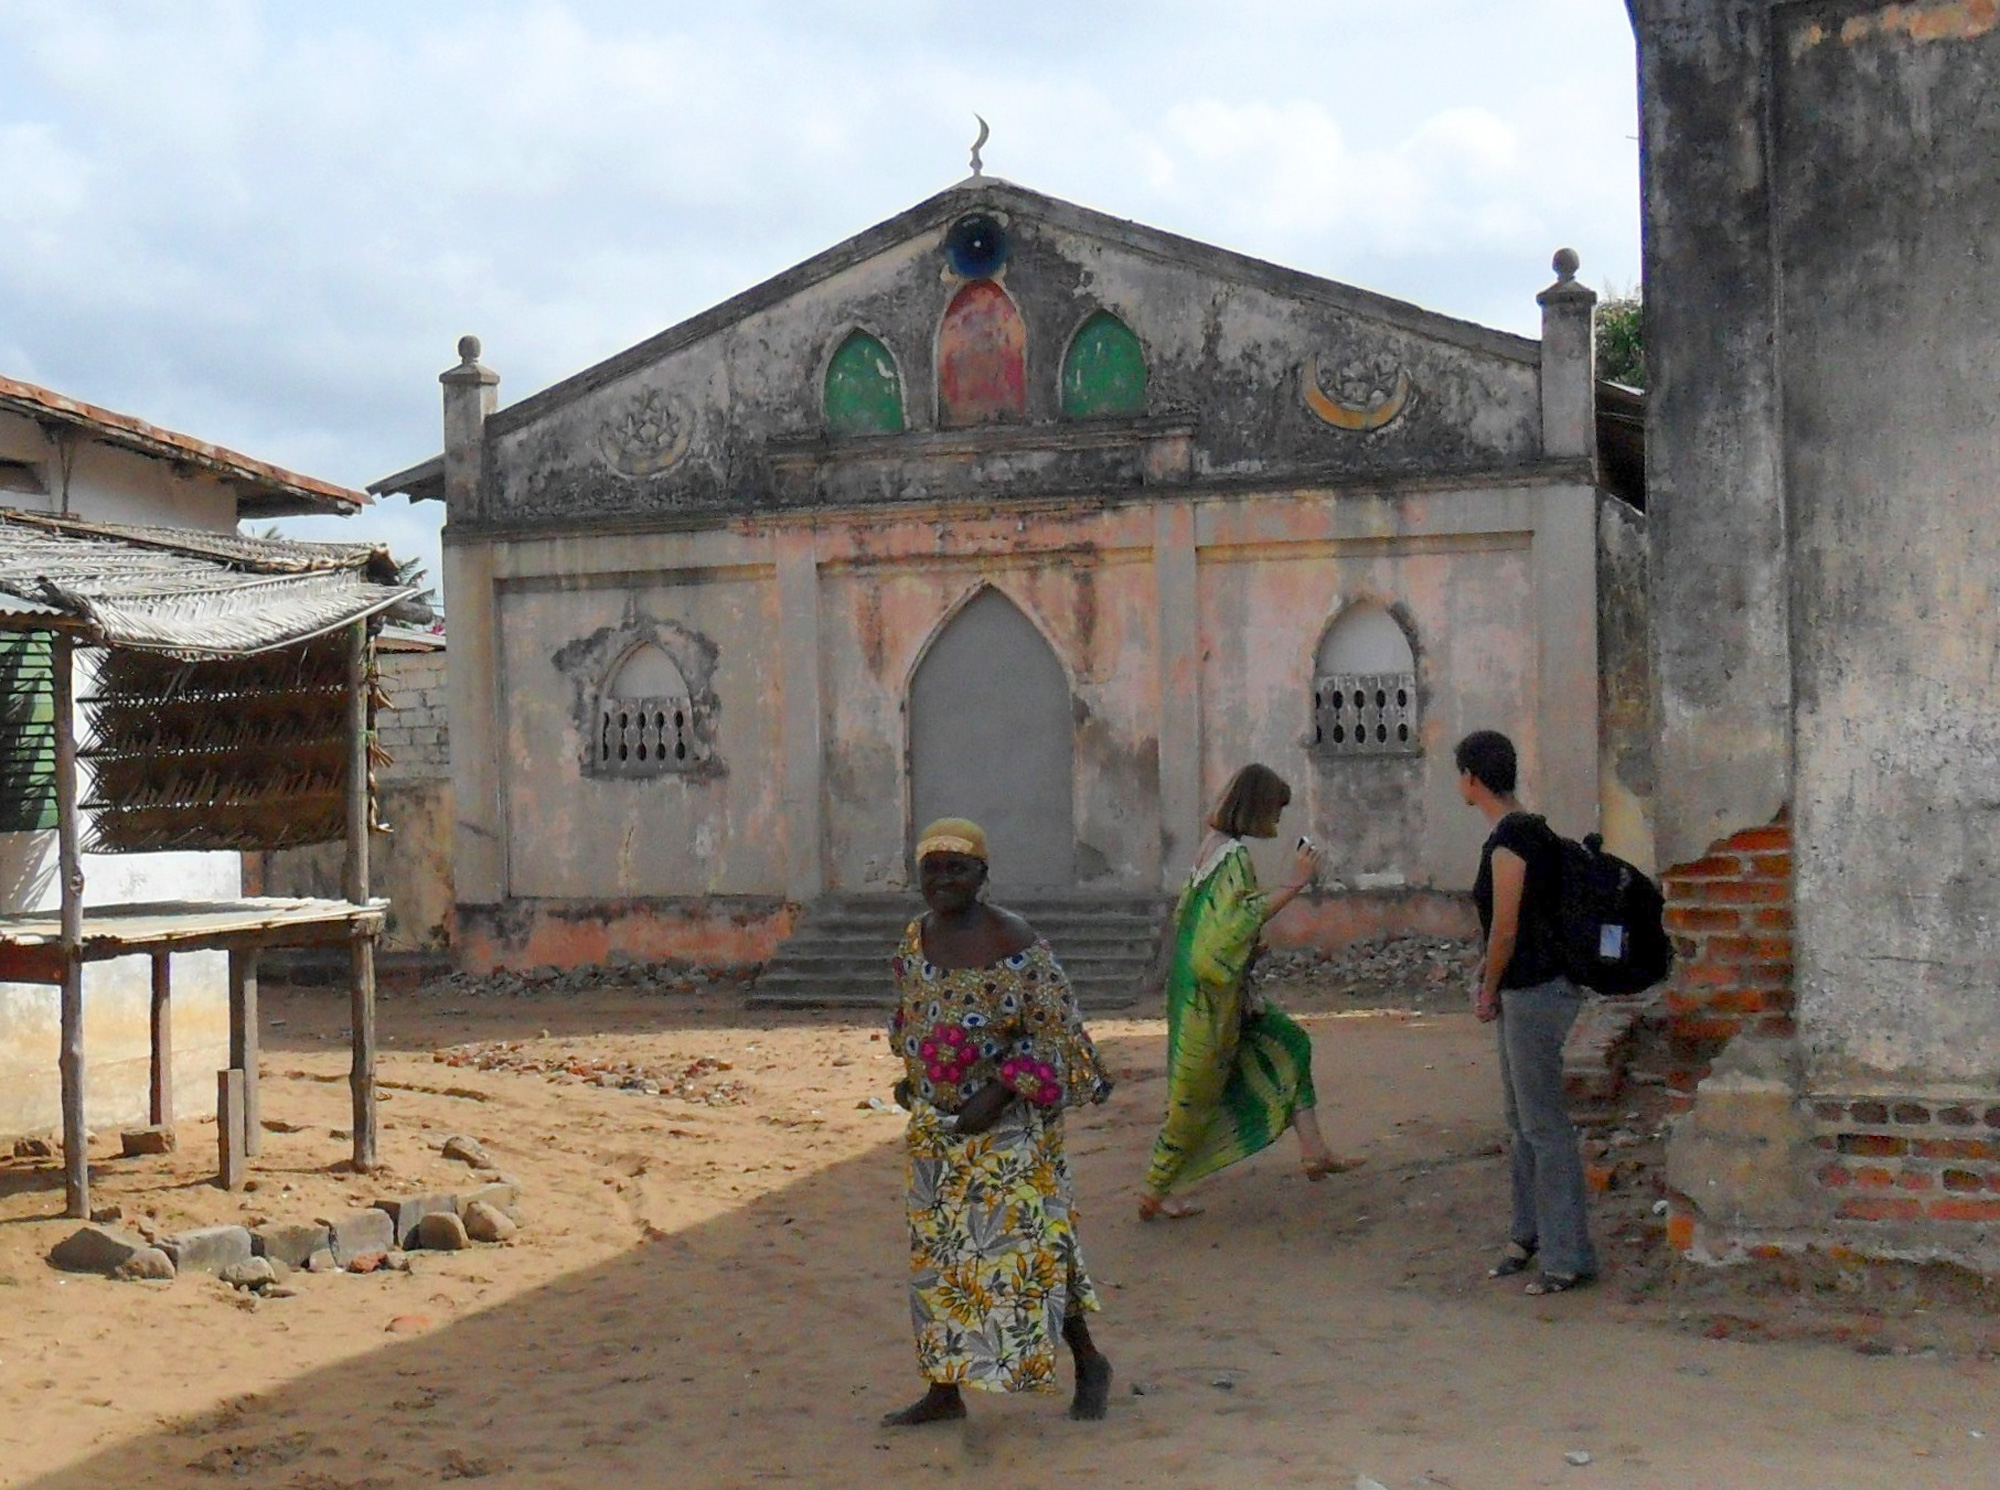 Idrissa was known as a marabout and one of his sons, Evaristo Tairu, studied the Koran with the imam Mamadou Daniel Bello da Gloria, ancestor of the Da Gloria family. Tairu became imam of the mosque in the Hausa quarter, shown here. ©Lisa Earl Castillo